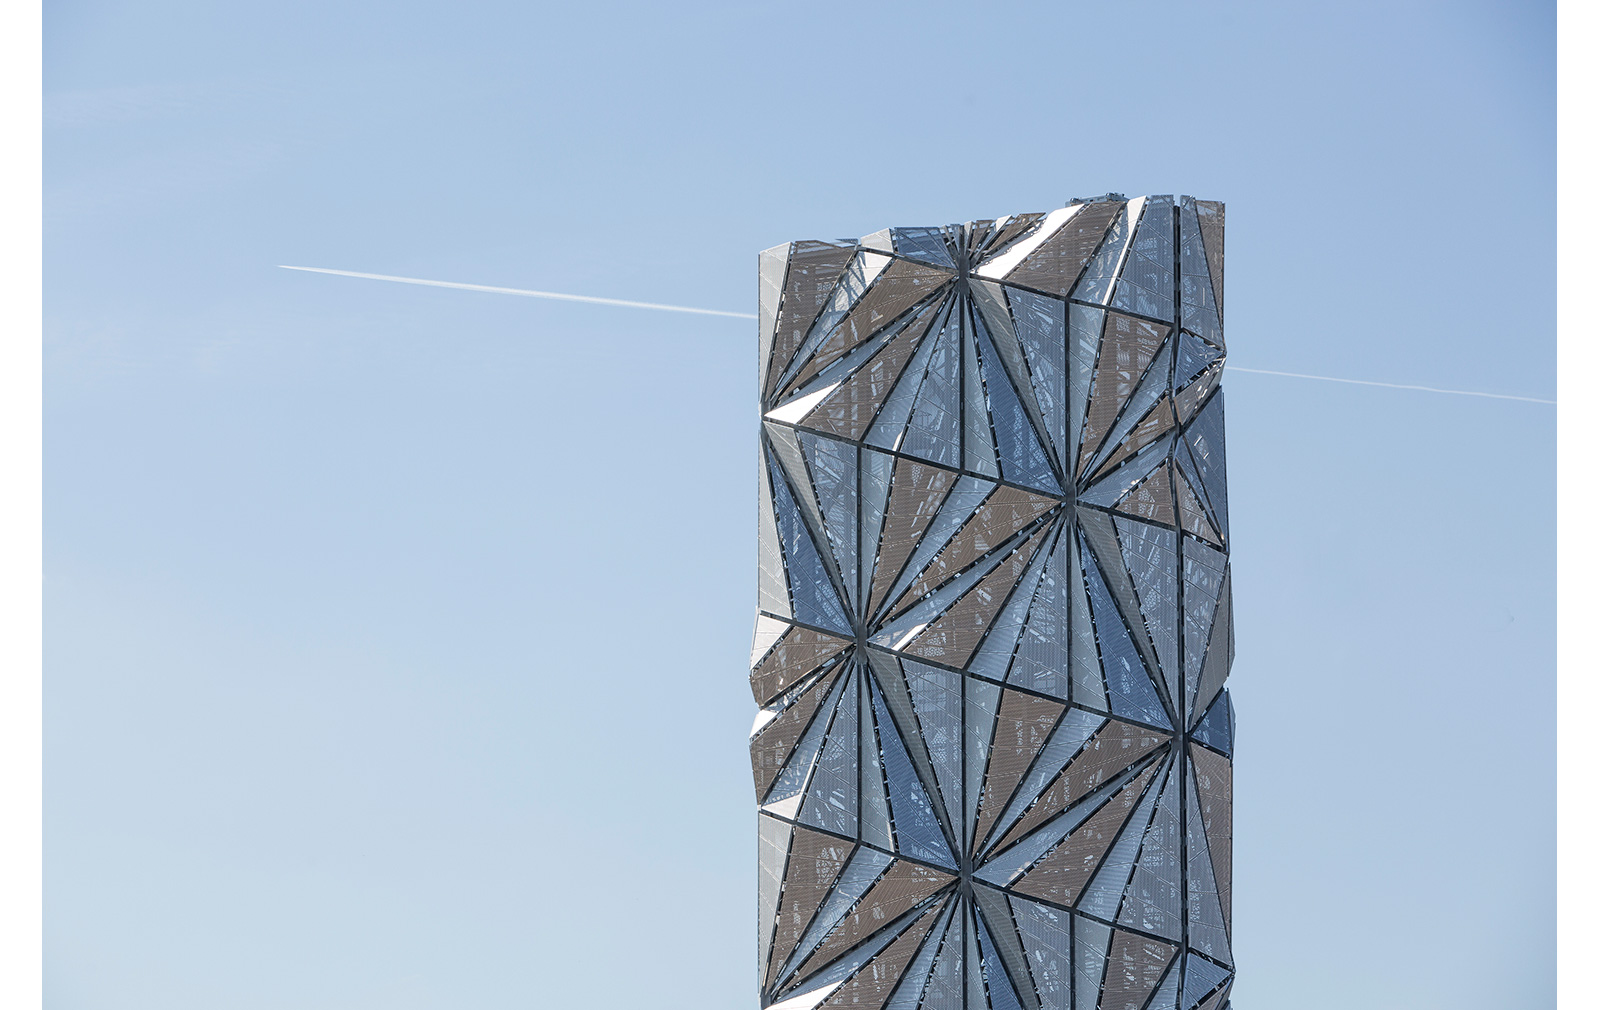 The Optic Cloak by Conrad Shawcross. Photography: Marc Wilmot, courtesy of the Greenwich Peninsula